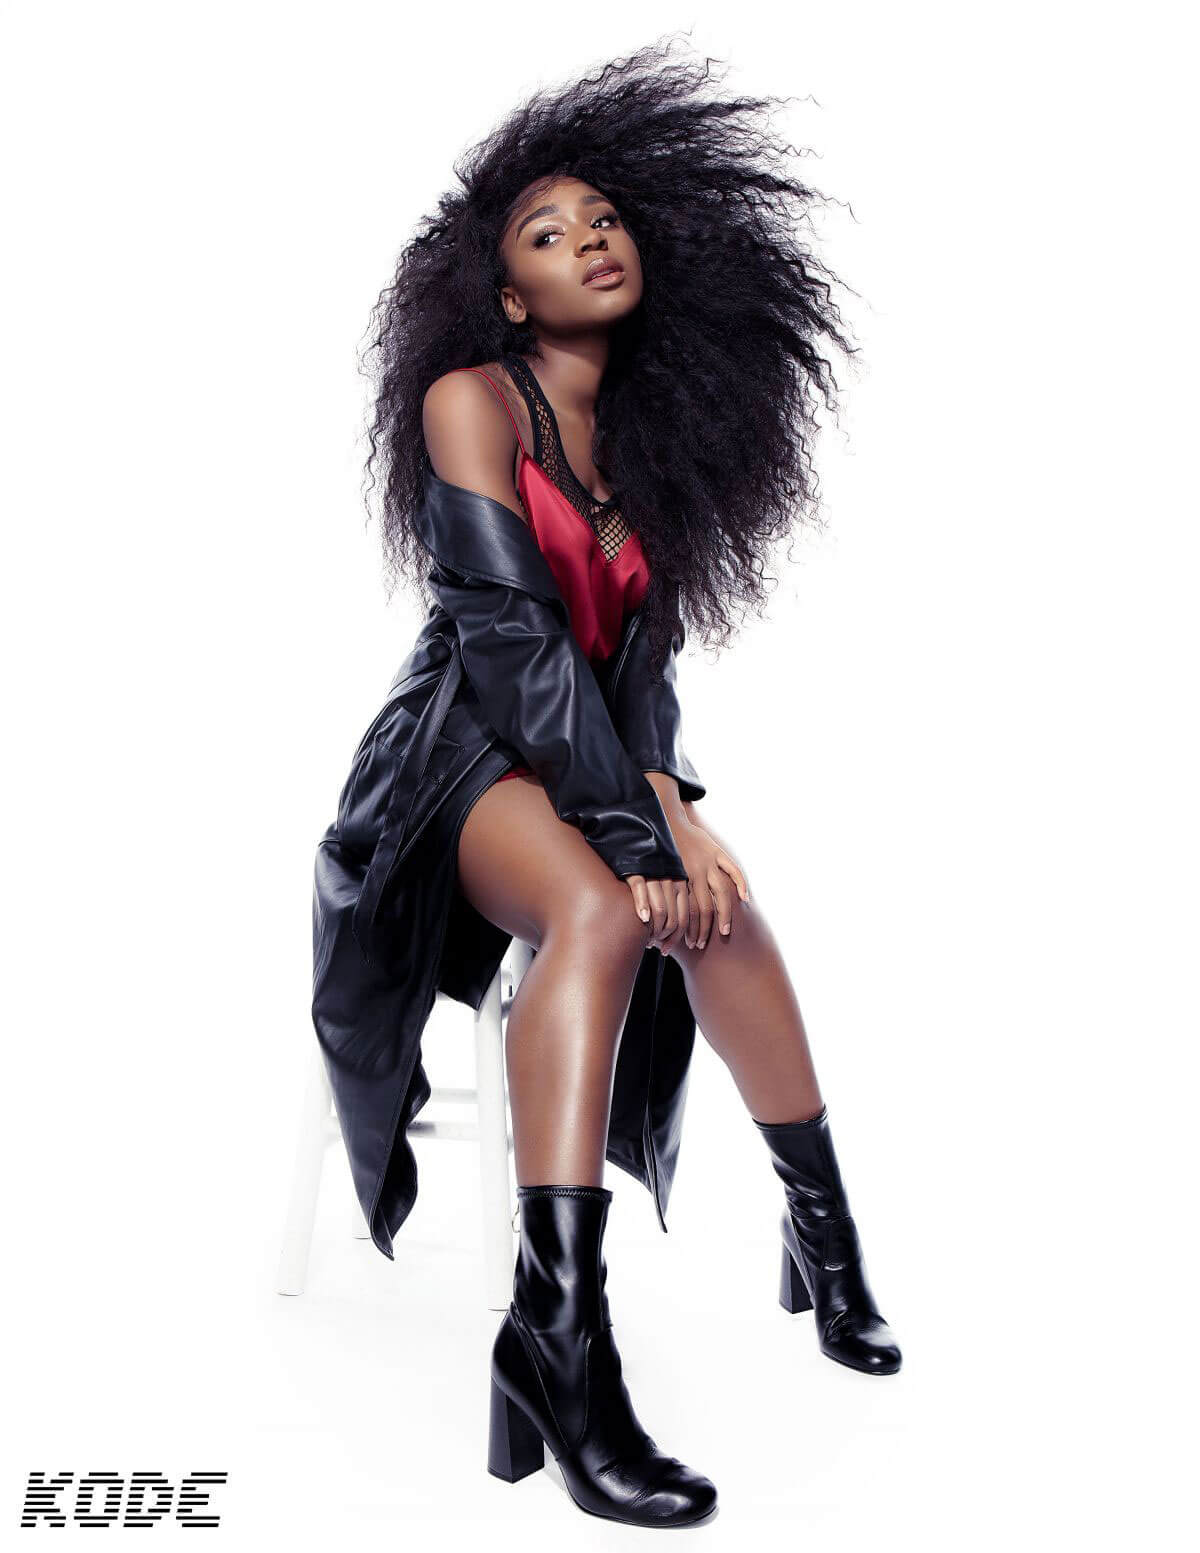 Normani Kordei Poses for Kode Magazine, October 2017